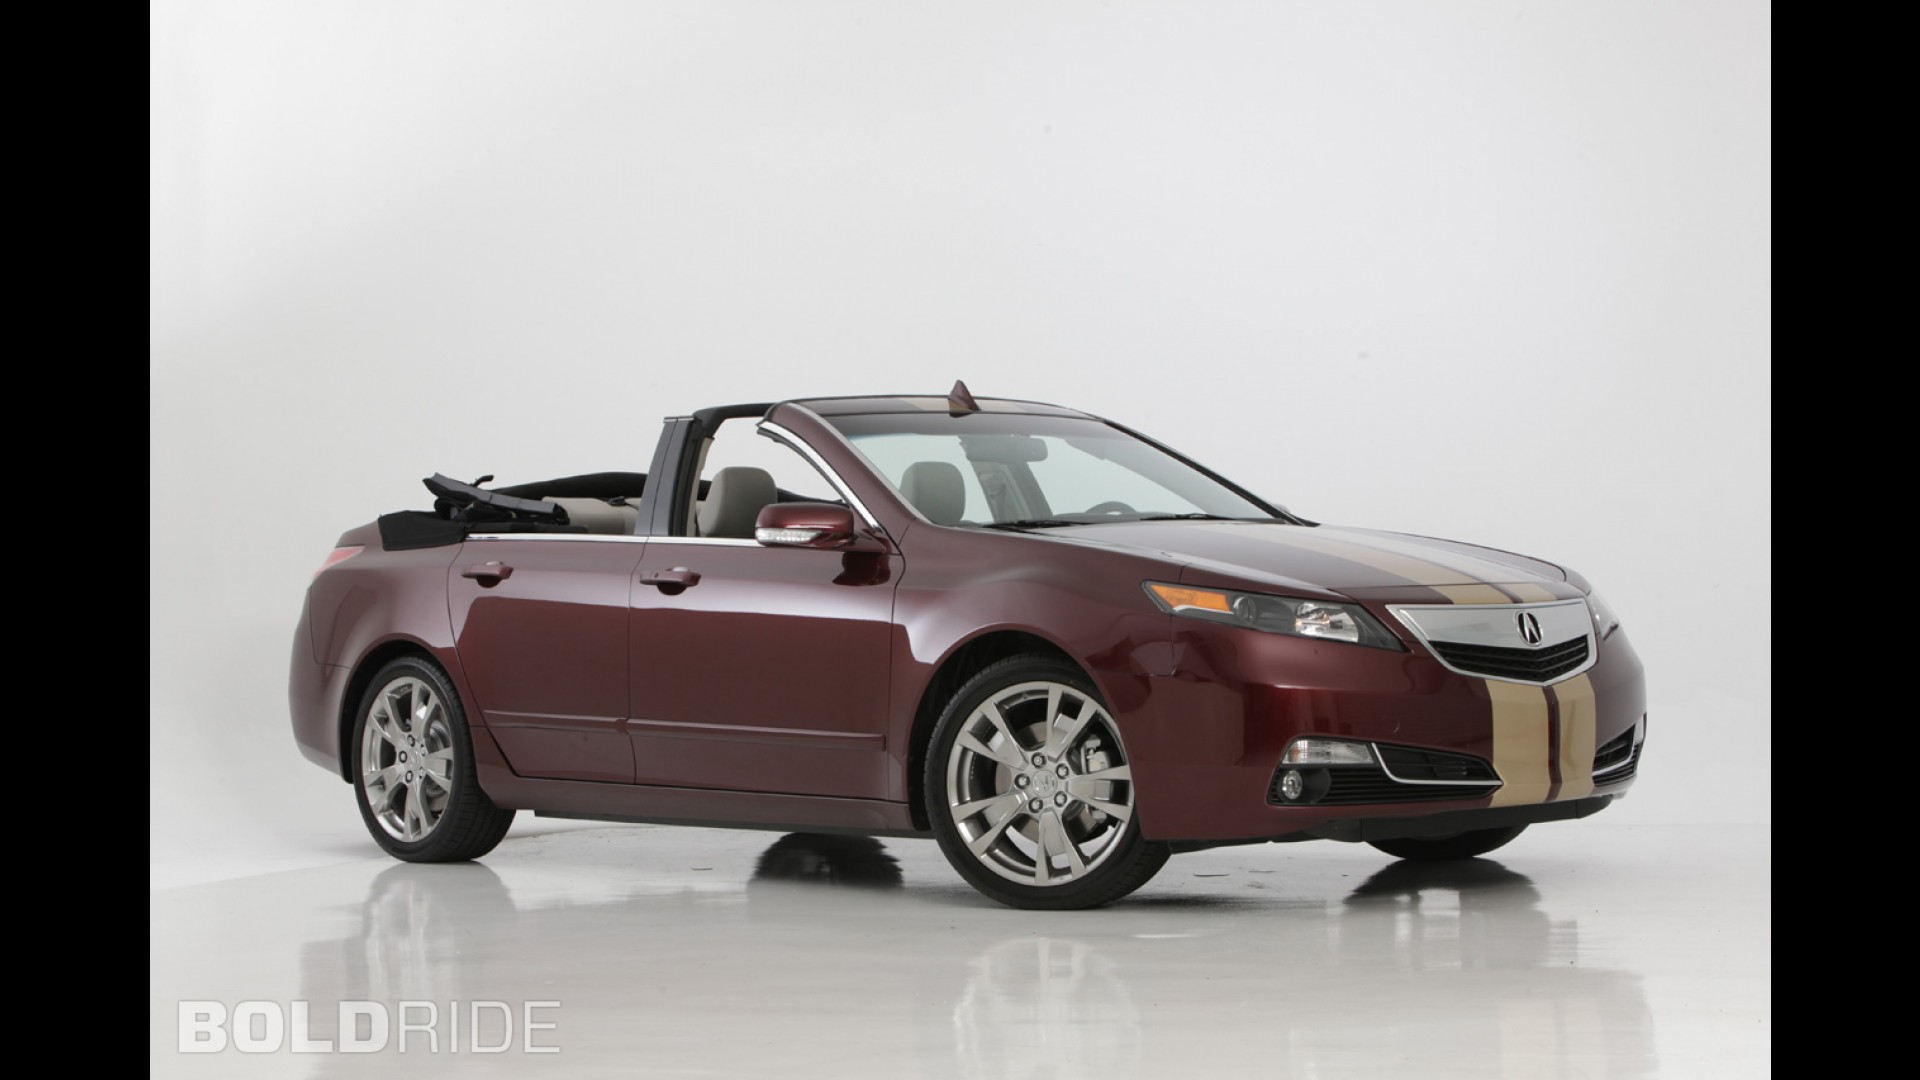 Newport Convertible Engineering Acura TL